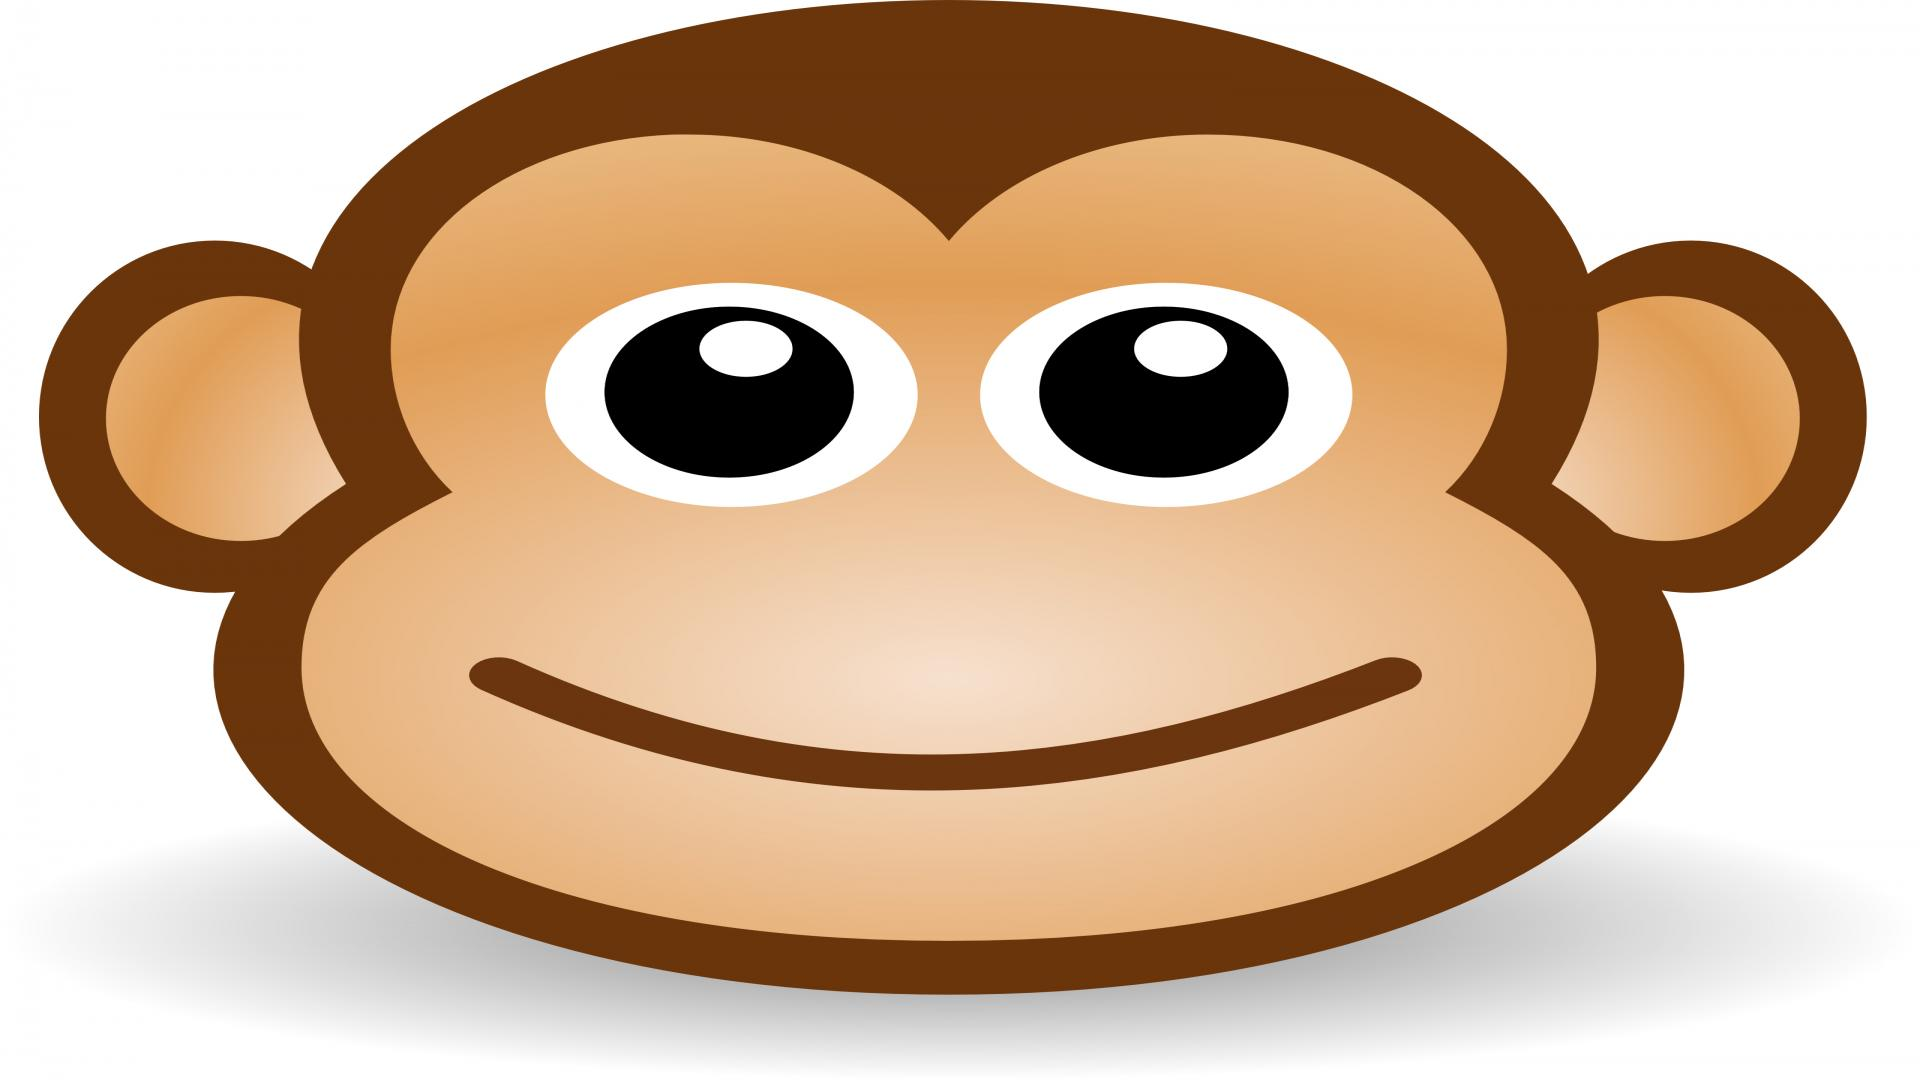 monkey cartoon wallpaper - photo #36